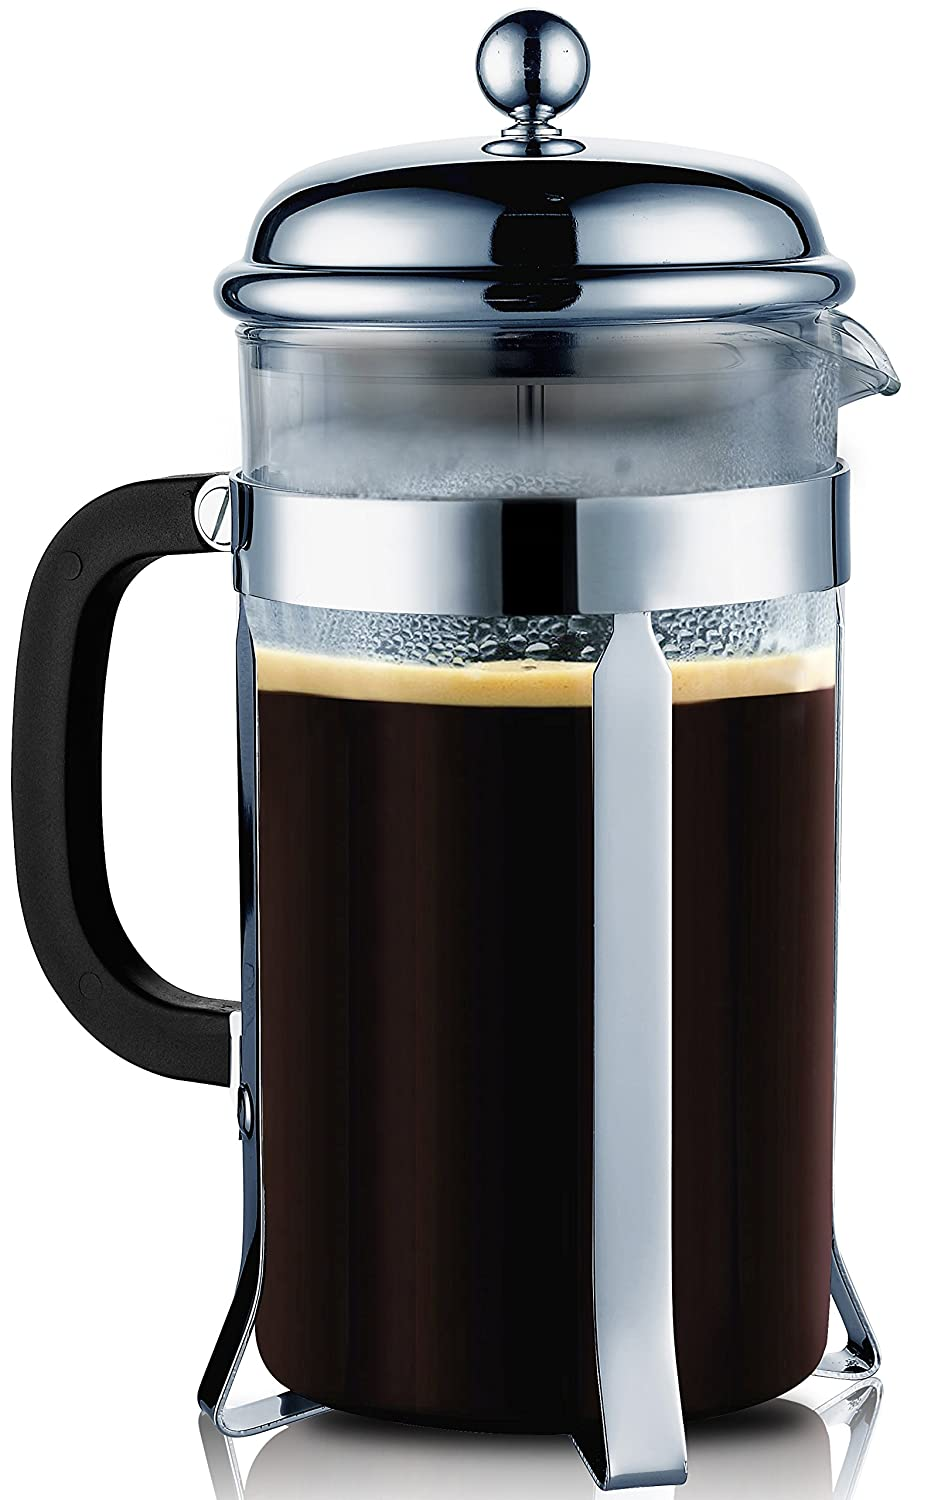 SterlingPro French press coffee brewer